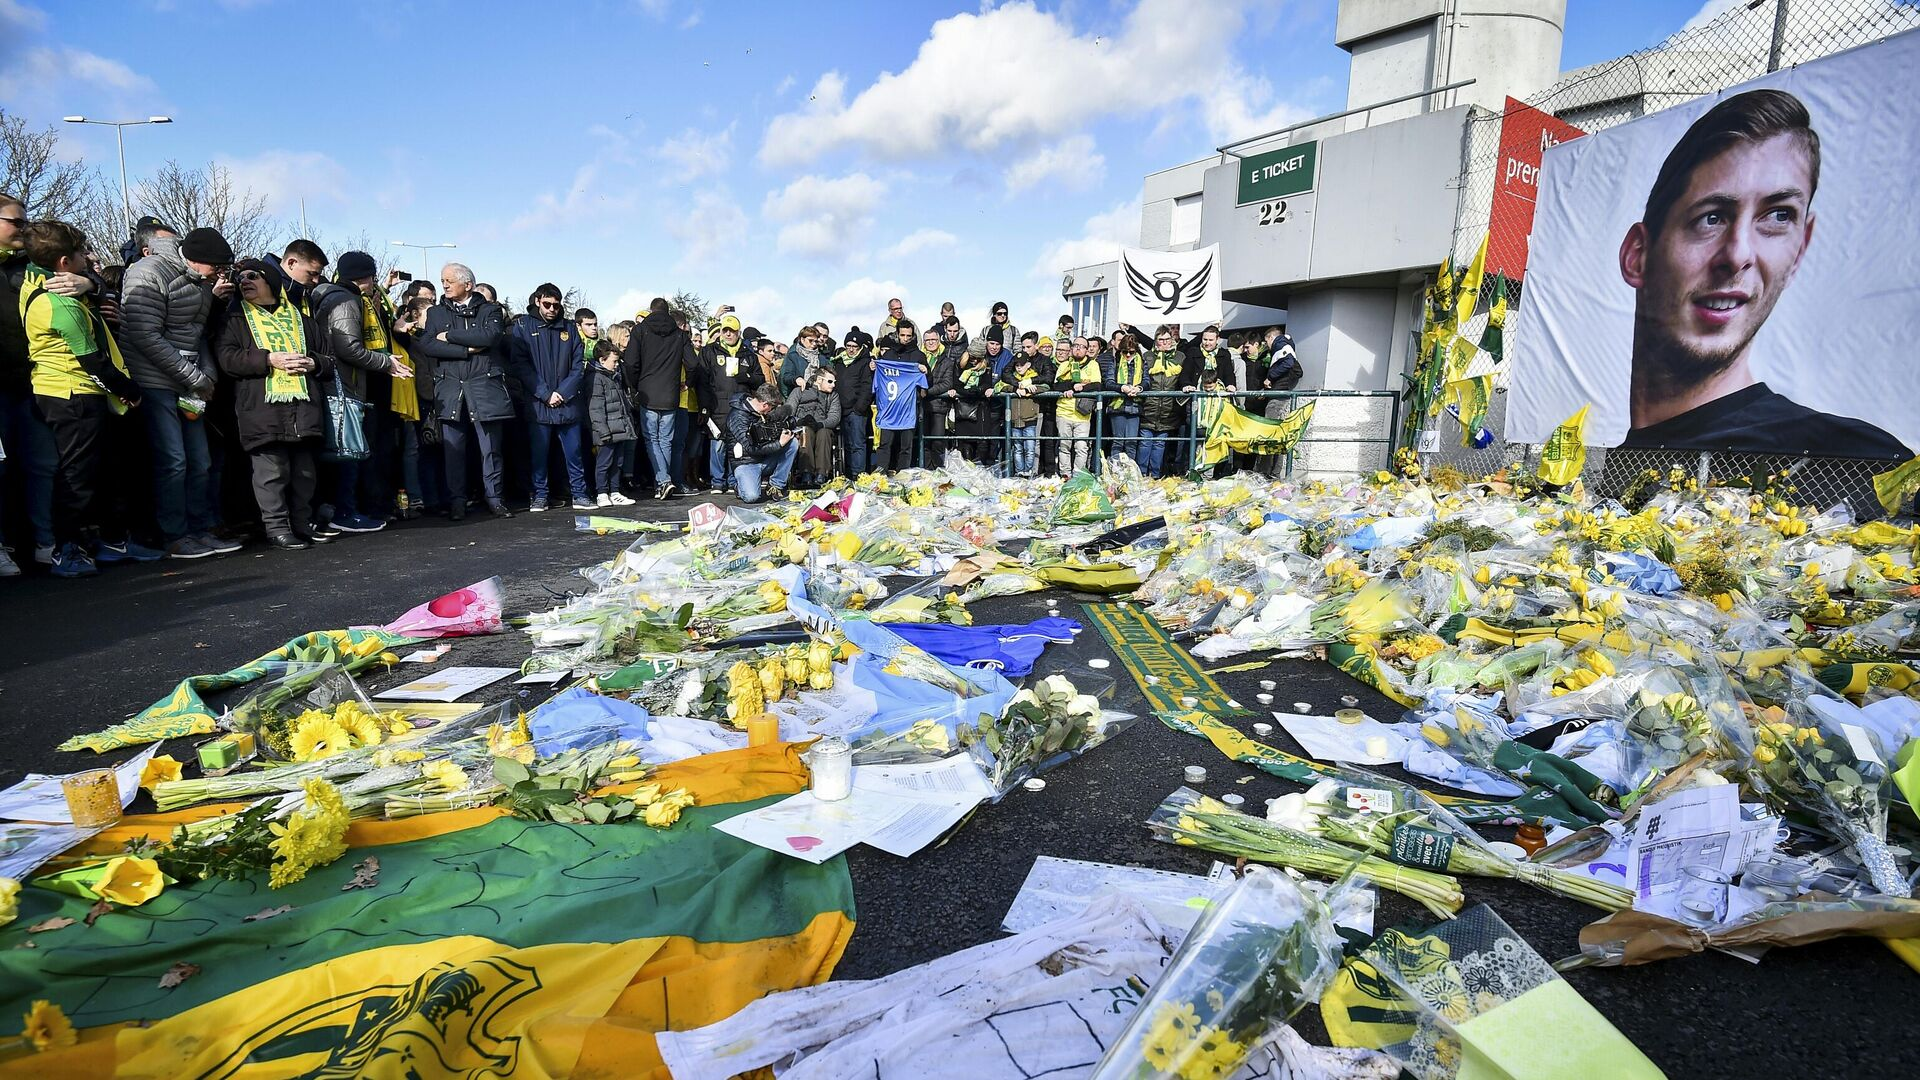 FC Nantes supporters gather in front of a portrait of late Argentinian forward Emiliano Sala to pay tribute prior to the French L1 football match between FC Nantes and Nimes Olympique at the La Beaujoire stadium in Nantes, western France on February 10, 2019. - FC Nantes football club announced on February 8, 2019 that it will freeze the #9 jersey as a tribute to Cardiff City and former Nantes footballer Emiliano Sala who died in a plane crash in the English Channel on January 21, 2019. (Photo by LOIC VENANCE / AFP) - РИА Новости, 1920, 21.01.2021